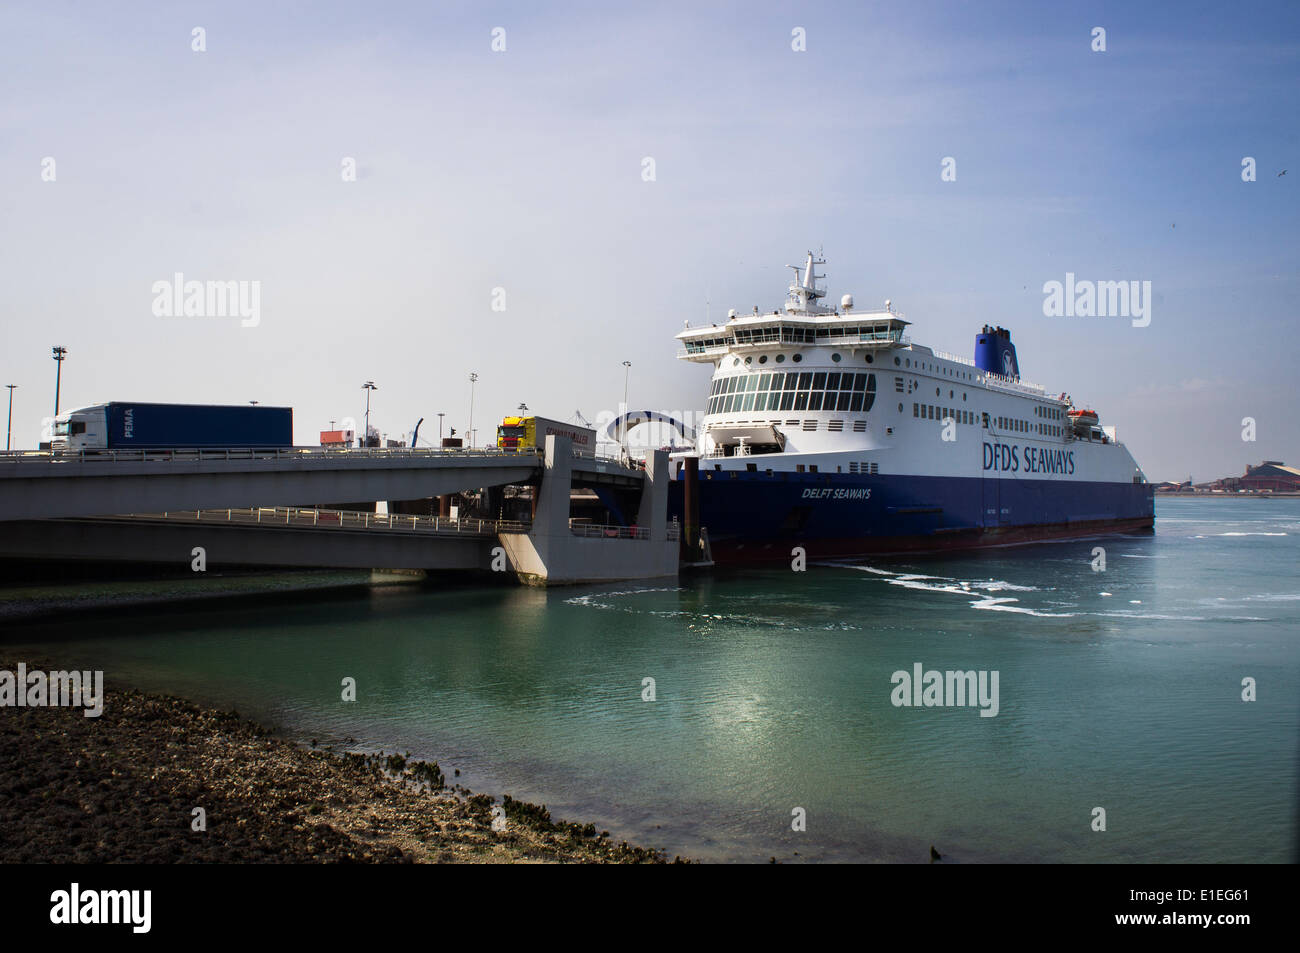 Dunkerque dunkirk port ferry ferryboat ship dfds seaways stock photo royalty free image - Dunkirk port france address ...